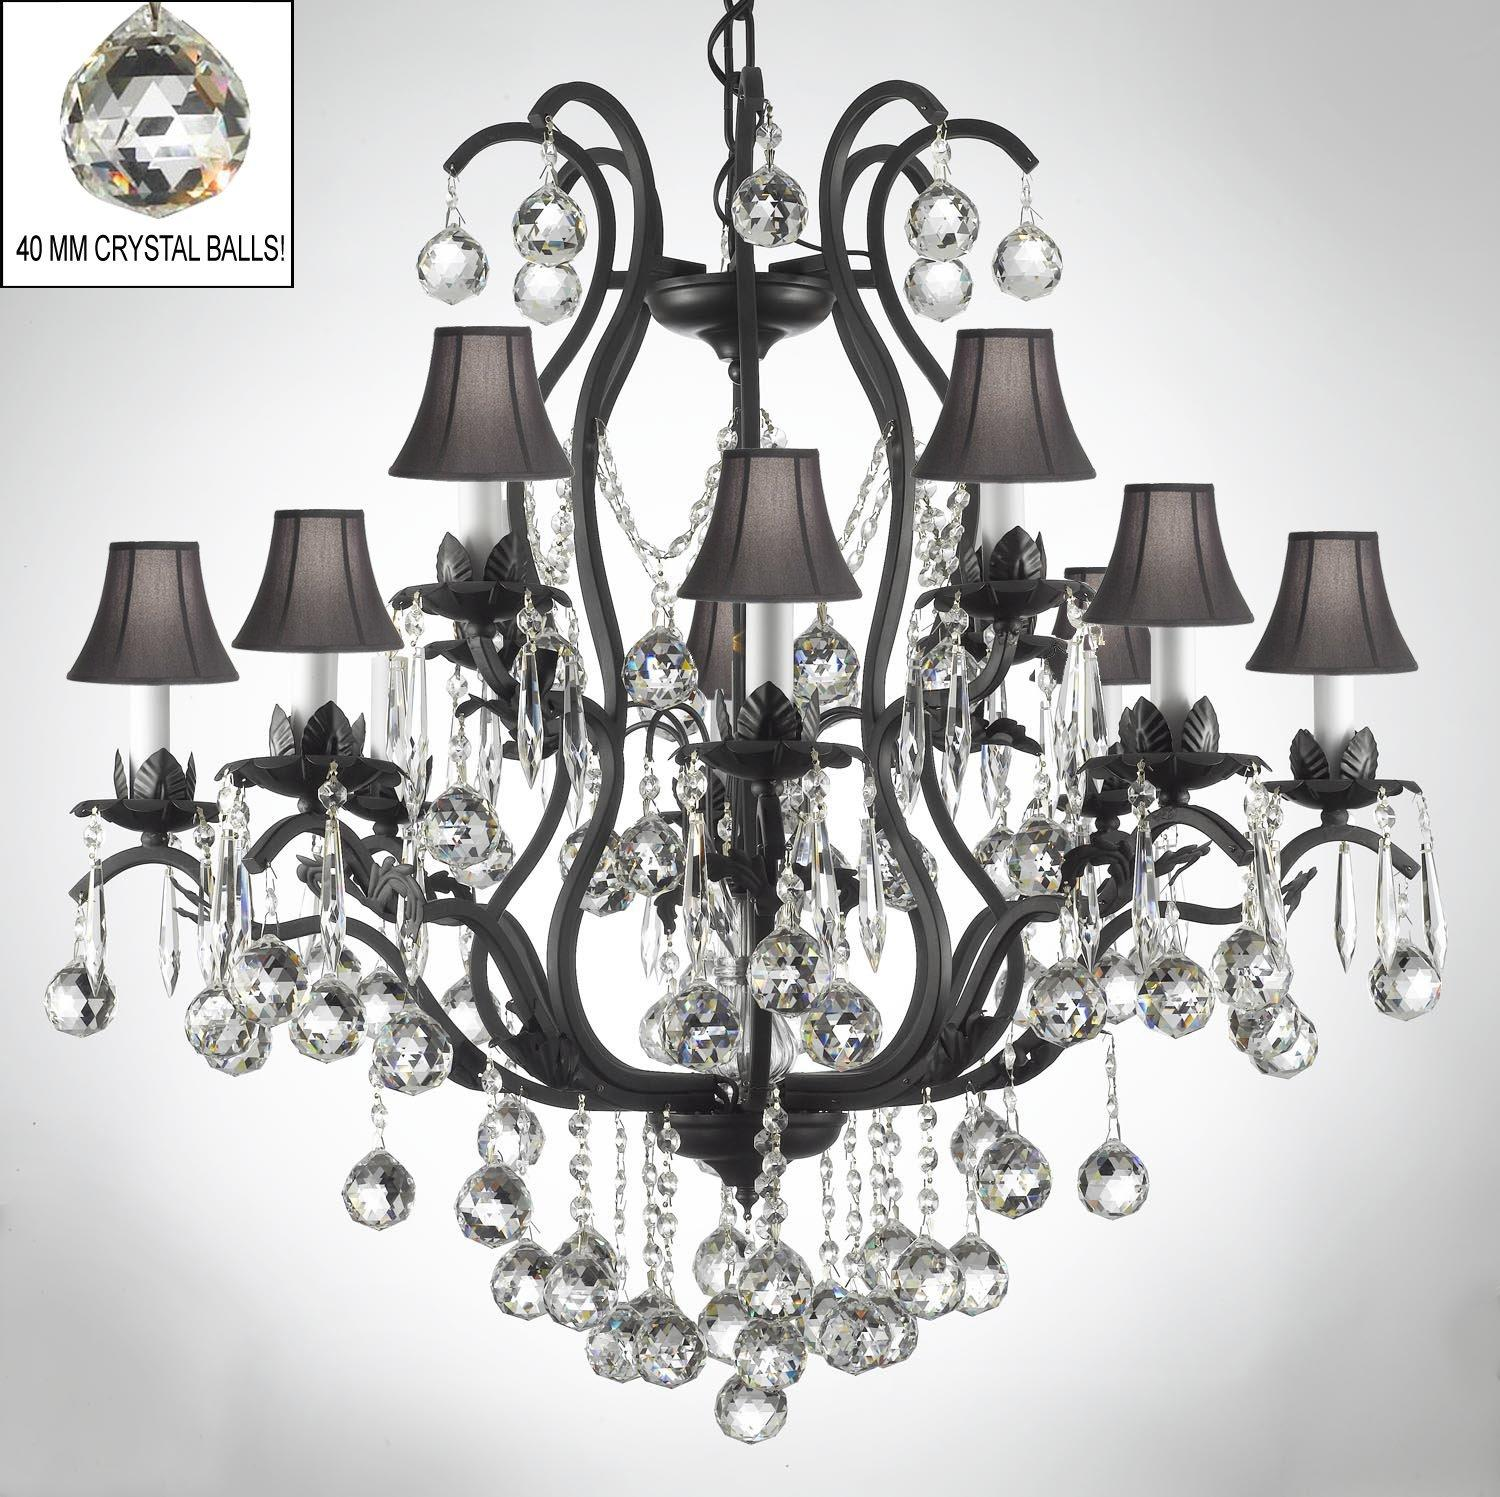 Wrought Iron Crystal Chandelier Lighting s Dressed With Crystal Balls